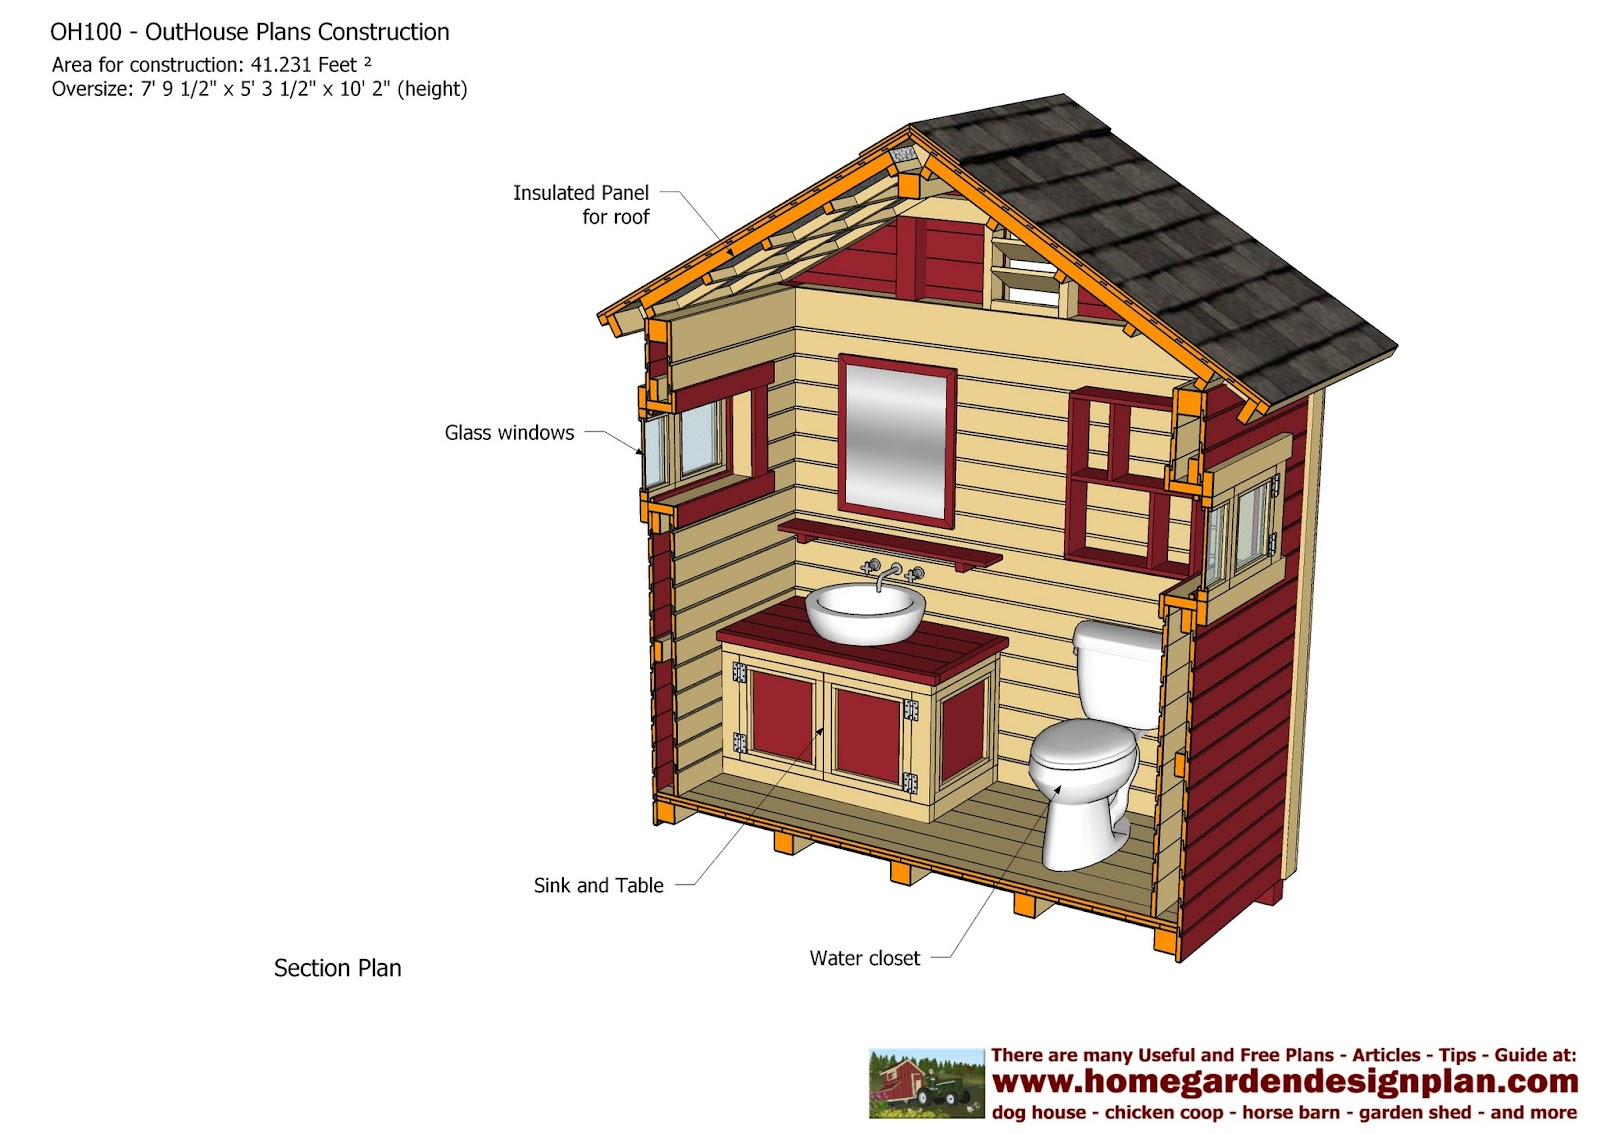 23 outhouse blueprints ideas house plans 46630 for House construction plan